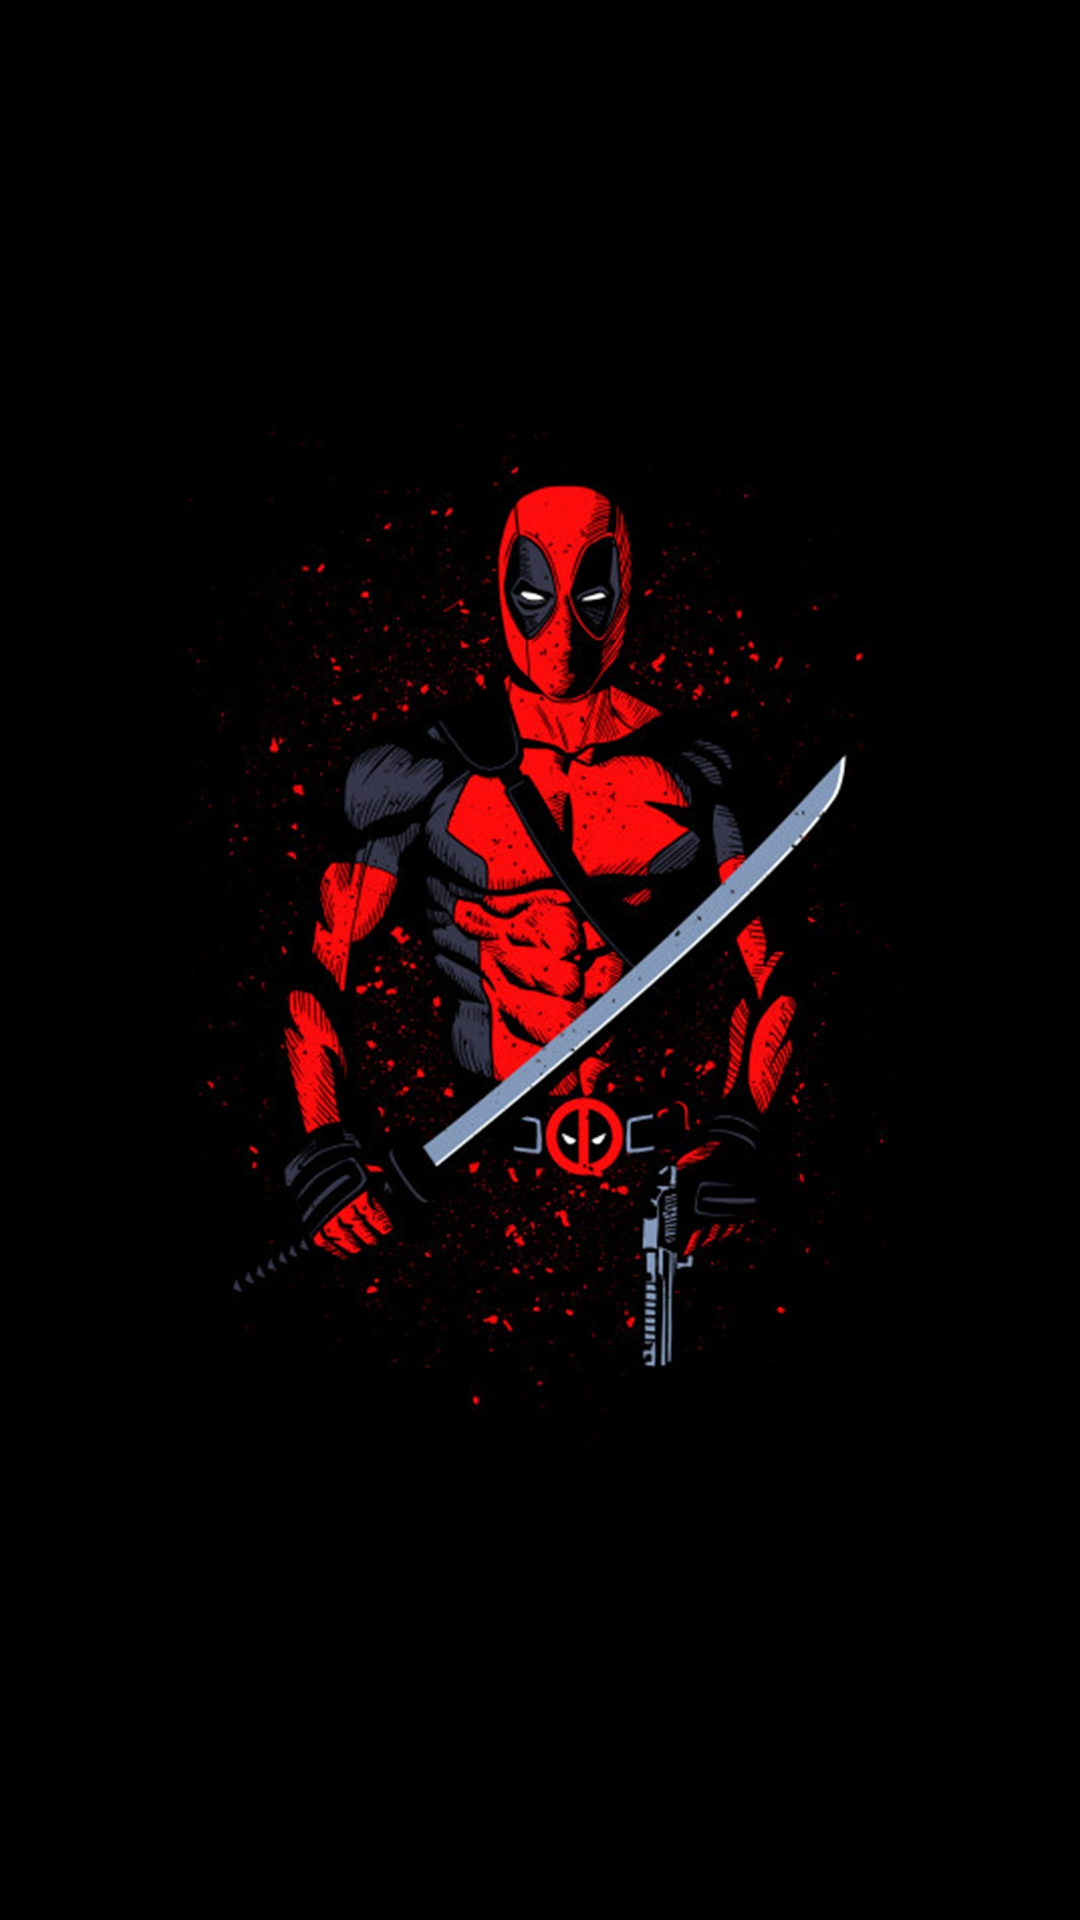 Cool Girl Wallpapers For Mobile Phones Deadpool With Sword Iphone Wallpaper Iphone Wallpapers